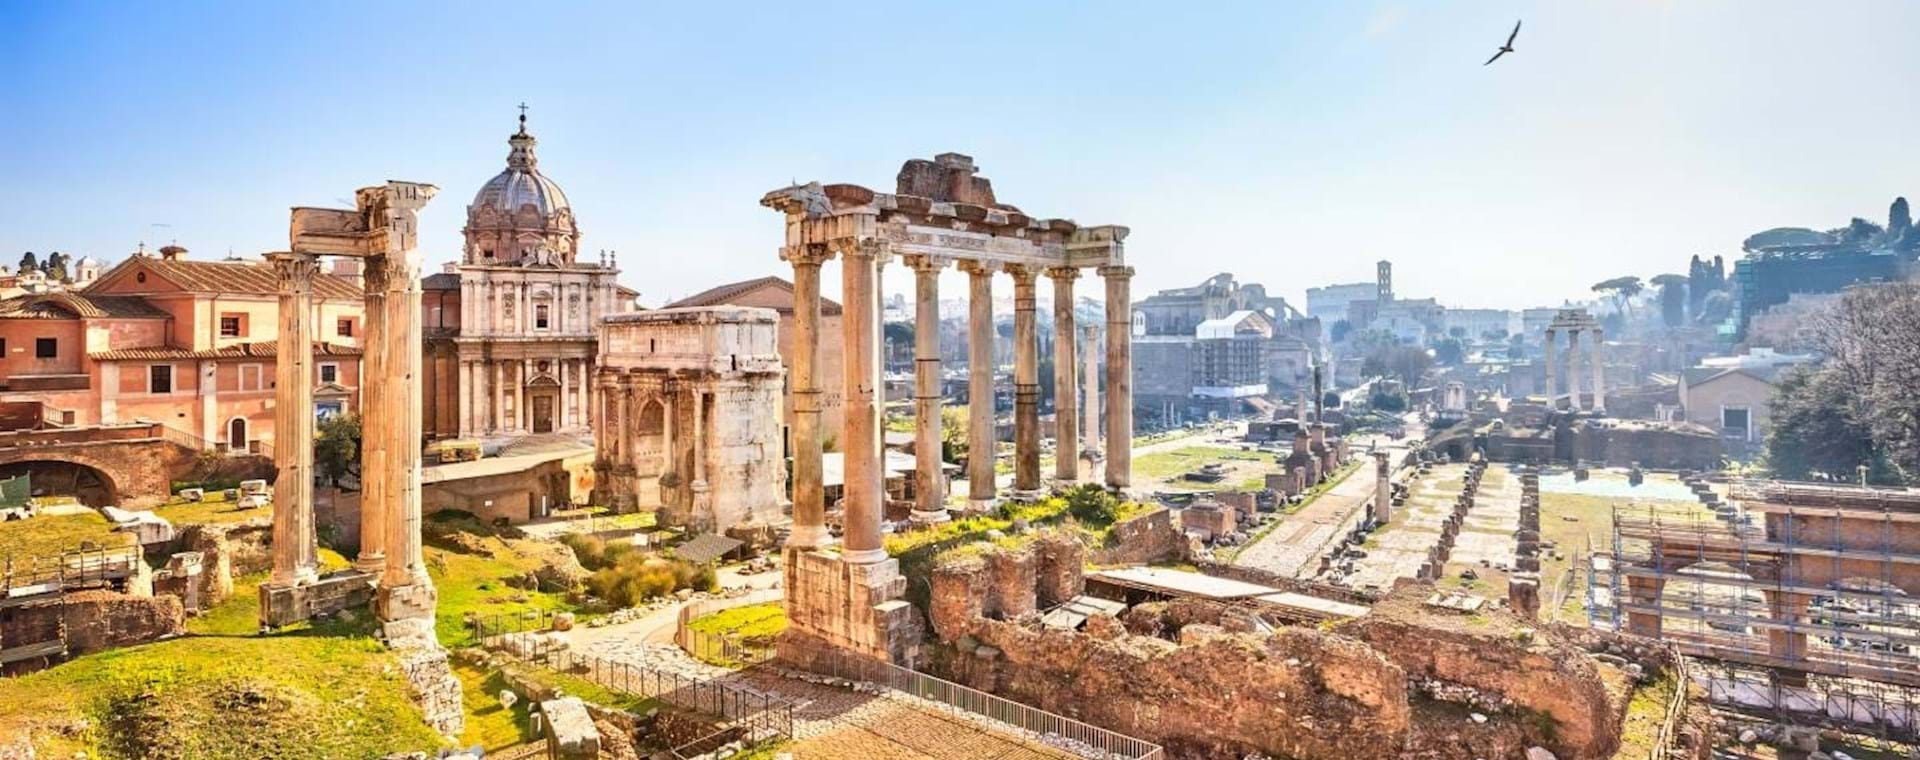 Skip the Line Tickets Colosseum & Roman Forum with Escorted Entry